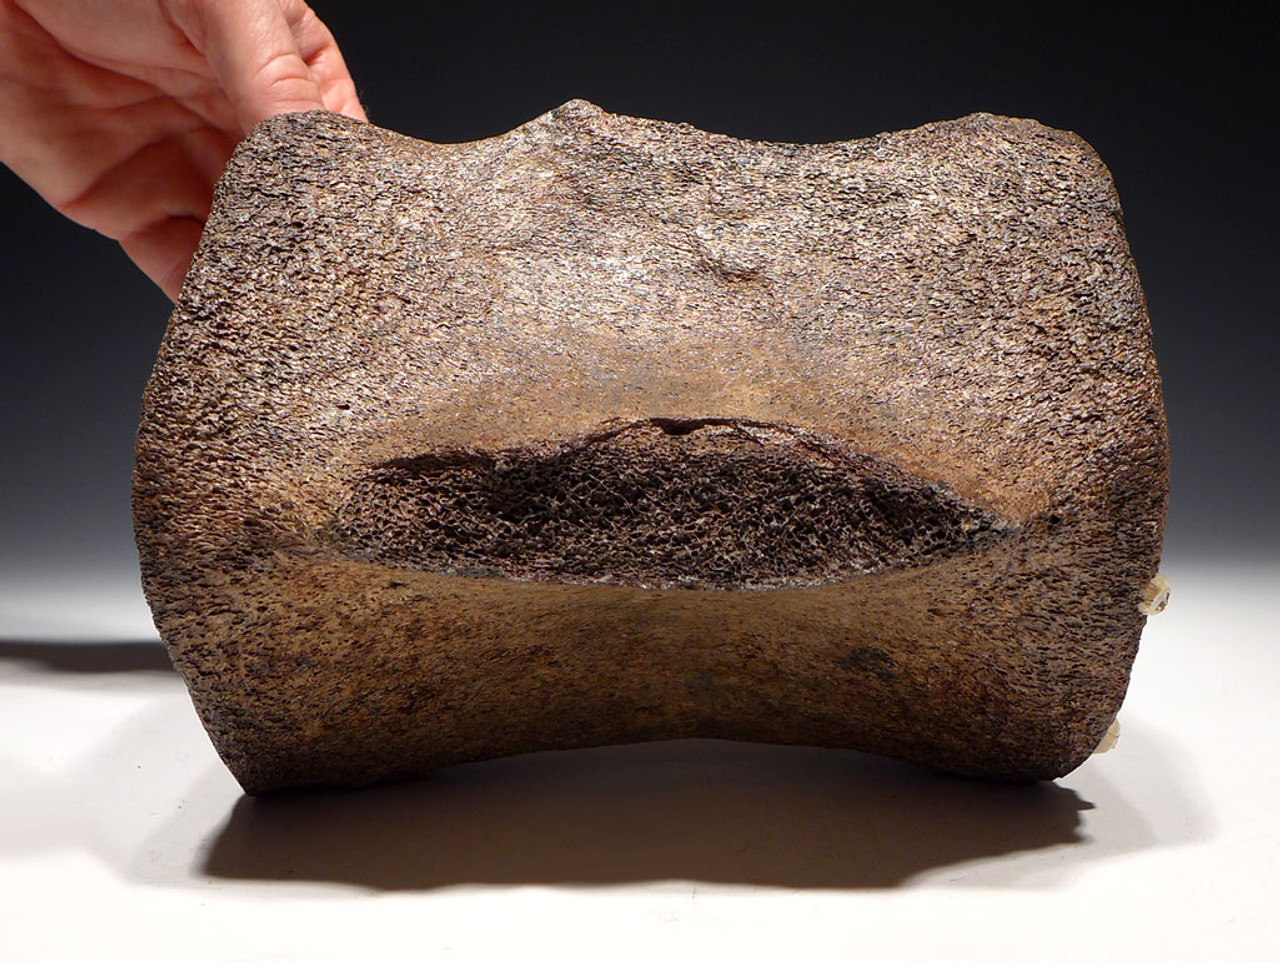 WH026  - EXCEPTIONALLY RARE LARGE PREHISTORIC FOSSIL WHALE VERTEBRA WITH CHOICE PRESERVATION